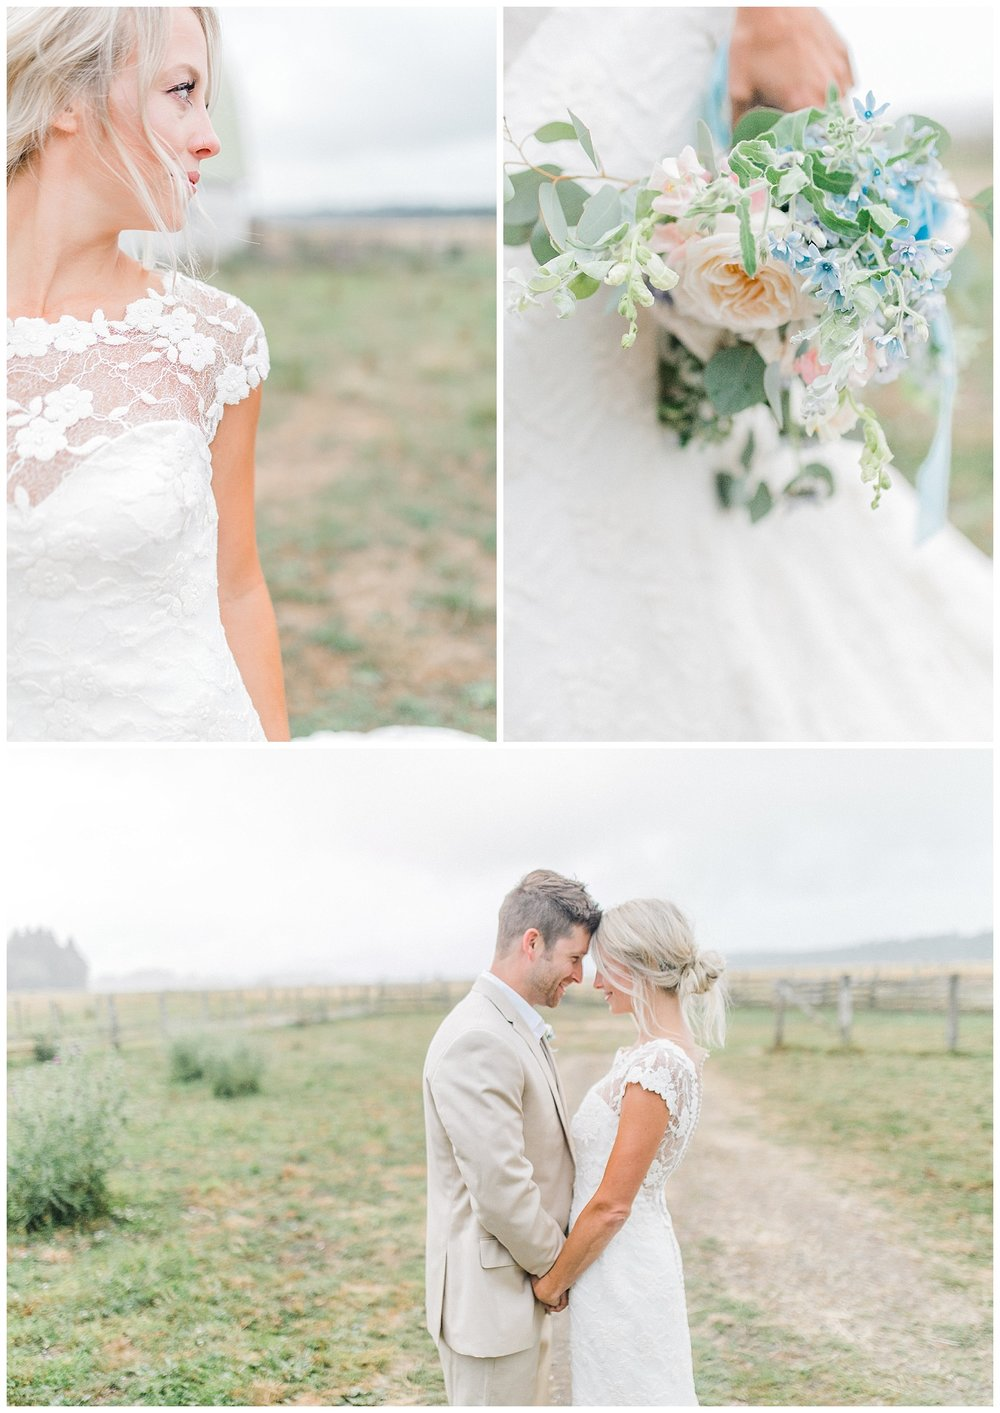 Emma Rose Company Dream Chasers Workshop and Education for Photographer | Light and Airy Rose Ranch Dream Barn Venue Wedding_0026.jpg